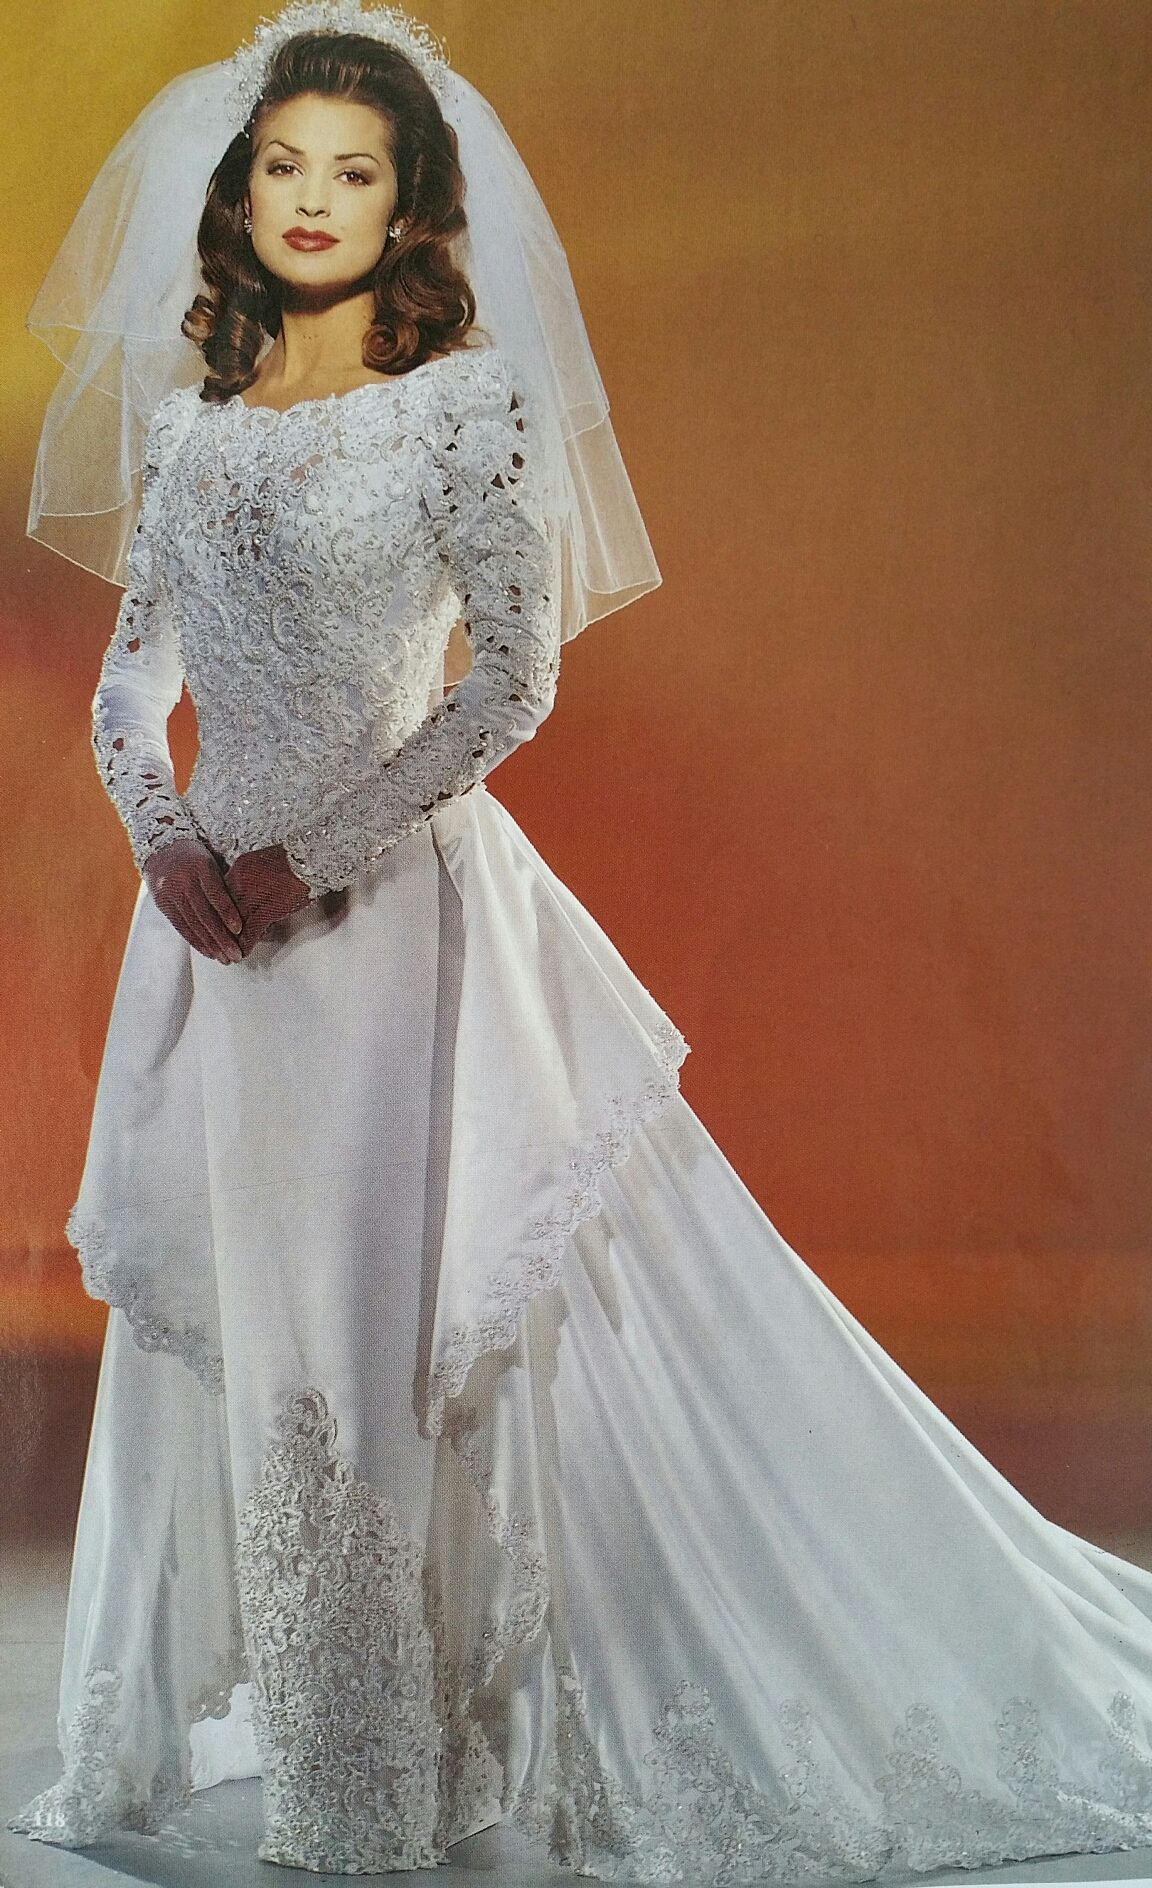 Demetrios 1994 | Demetrios gowns 24 to over 30 years old -but still ...